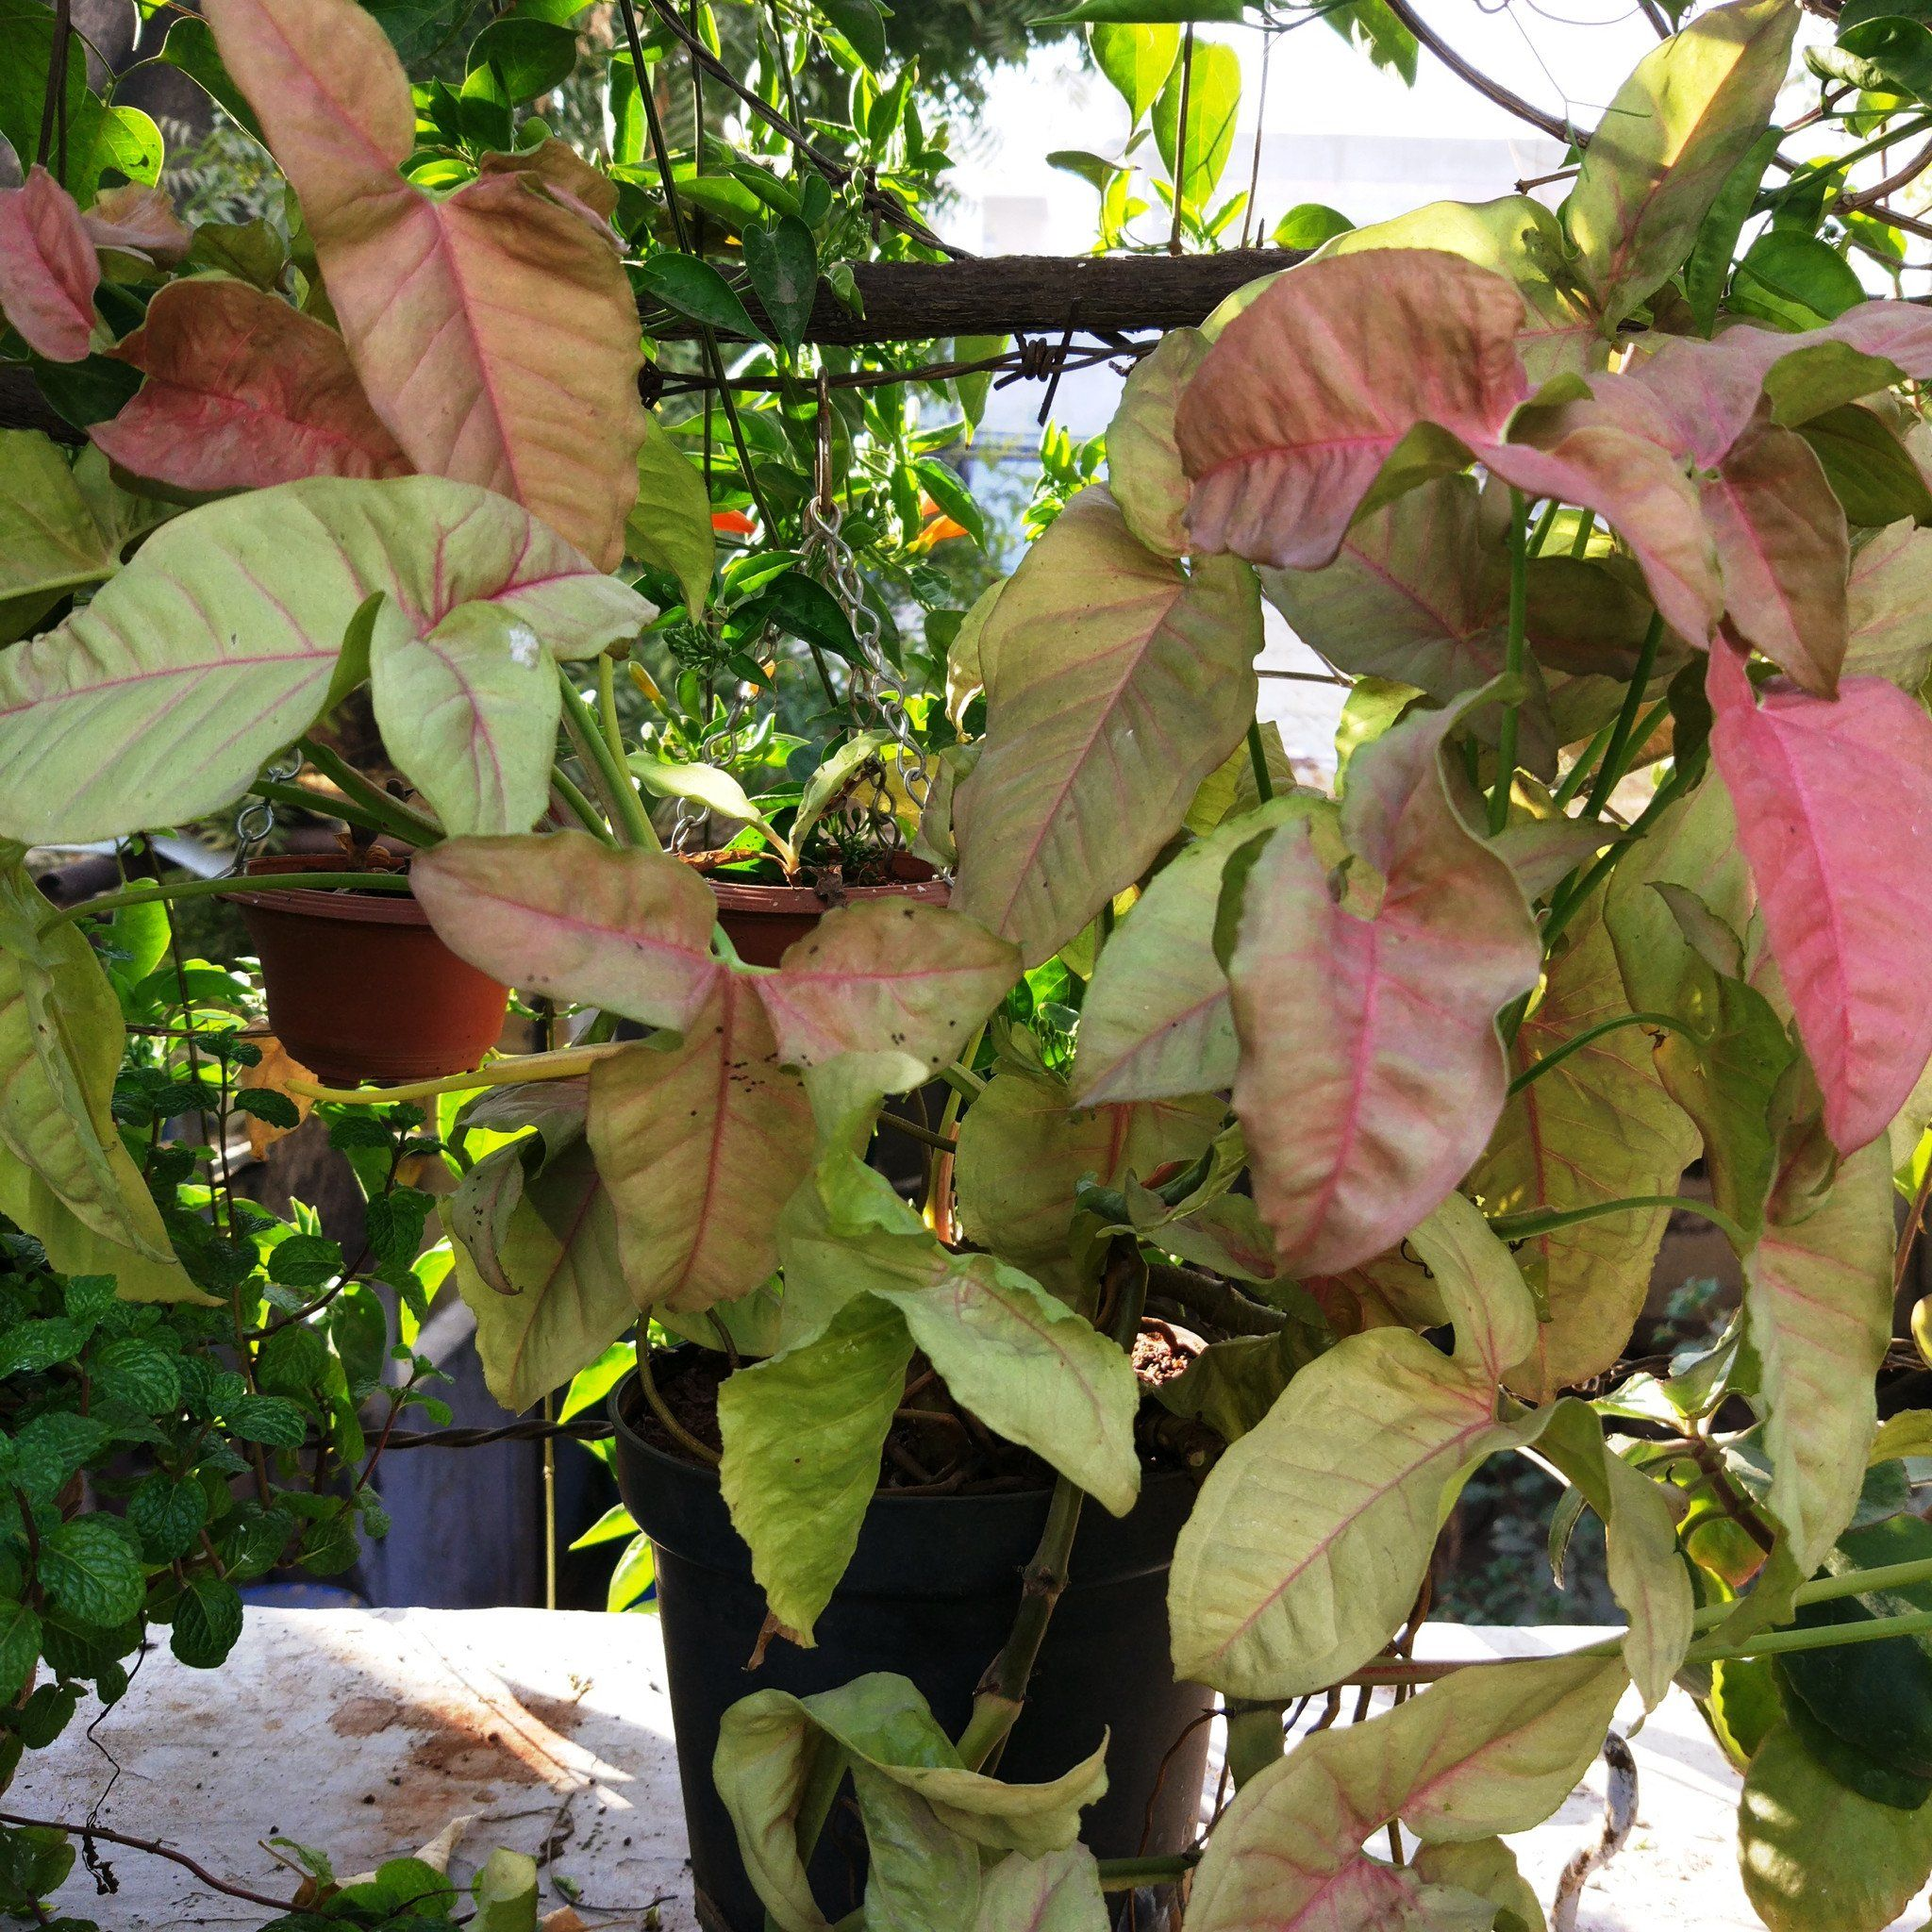 Syngonium Nepthytis Arrowhead Vine Pink Allusion Creeping Climbing Bright Indirect Light Let Soil Potted Plants Outdoor Plants Fertilizer For Plants